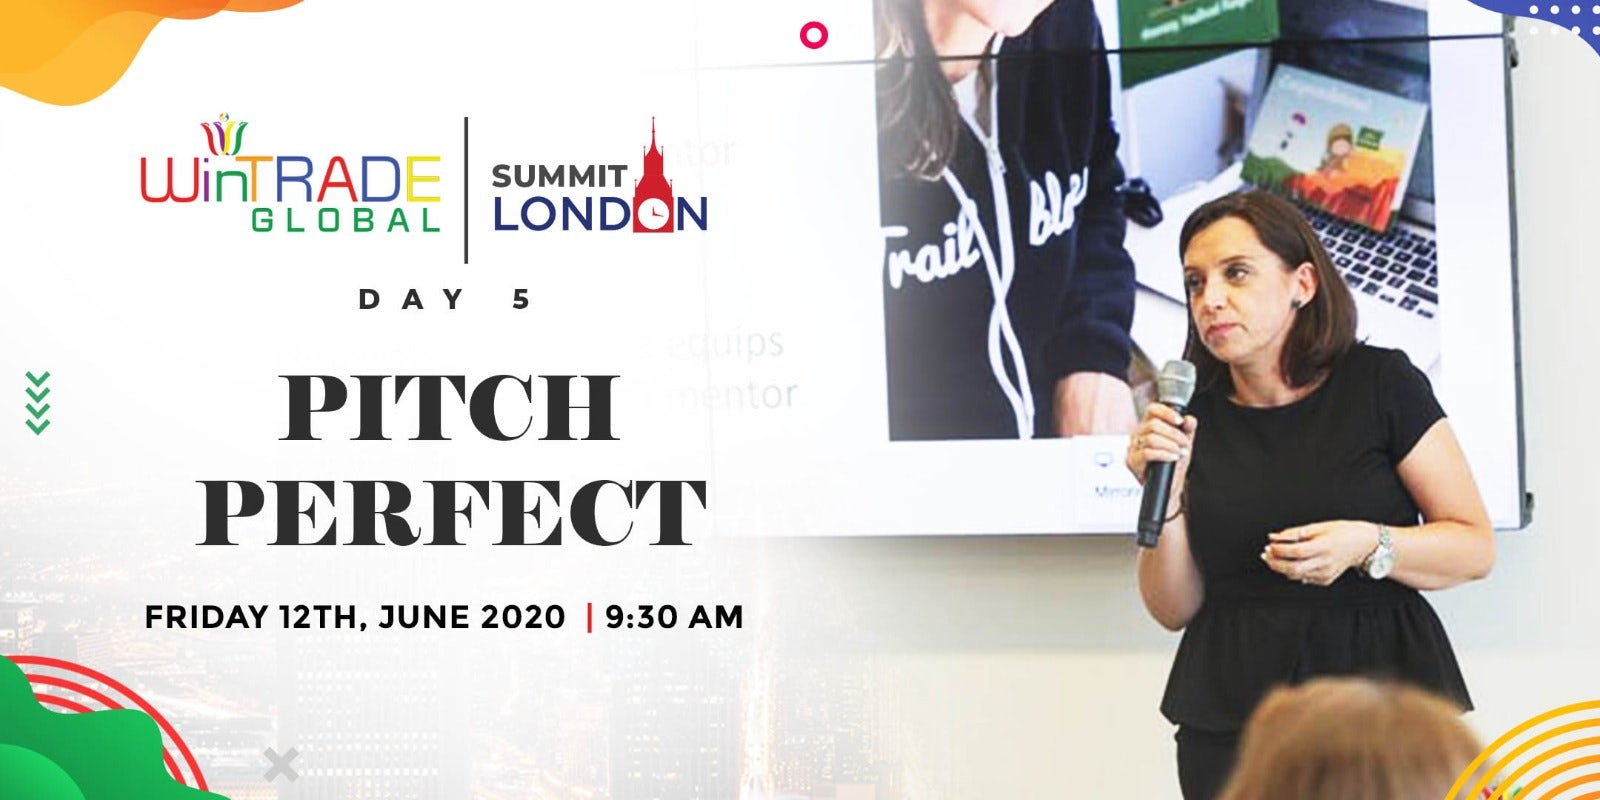 Perfect Pitch Day Friday 12th June 2020